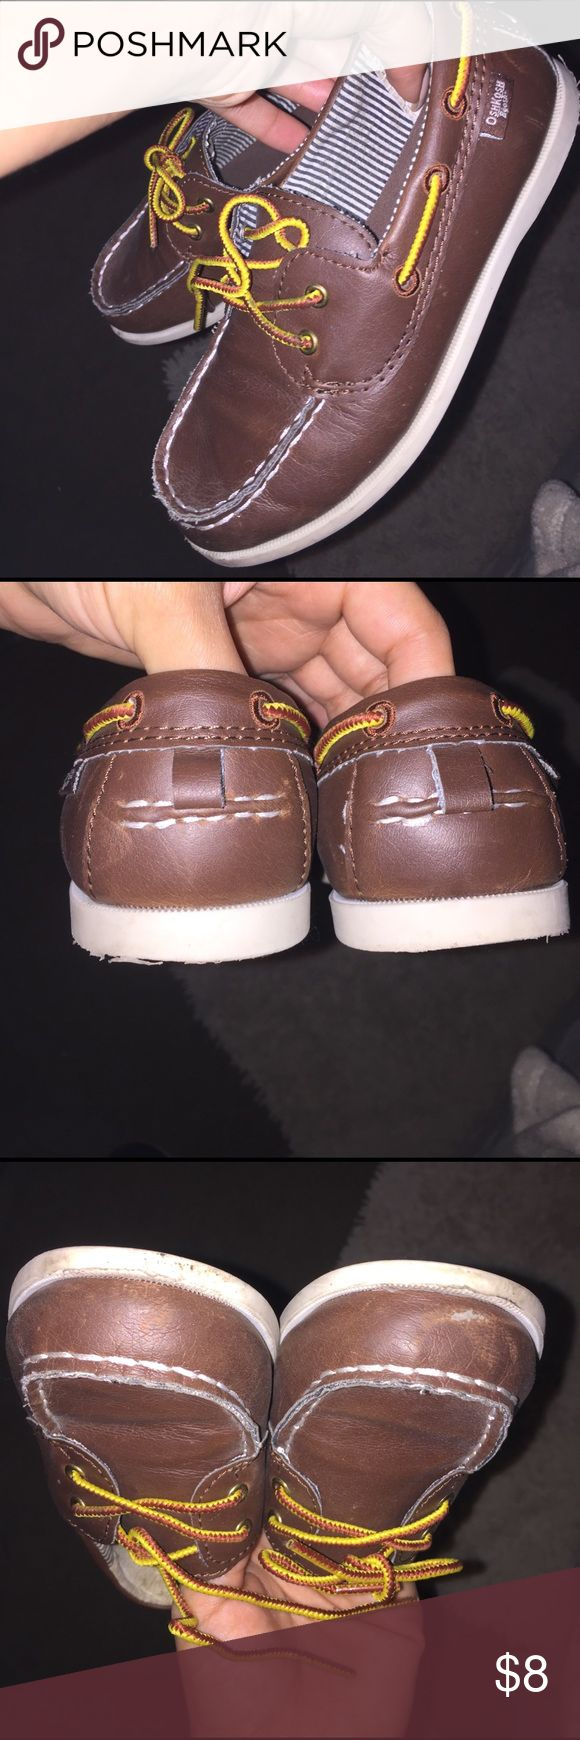 Boys Boat Shoes Brown Boat Shoes.. Wear is Shown in Pics Osh Kosh Shoes Dress Shoes